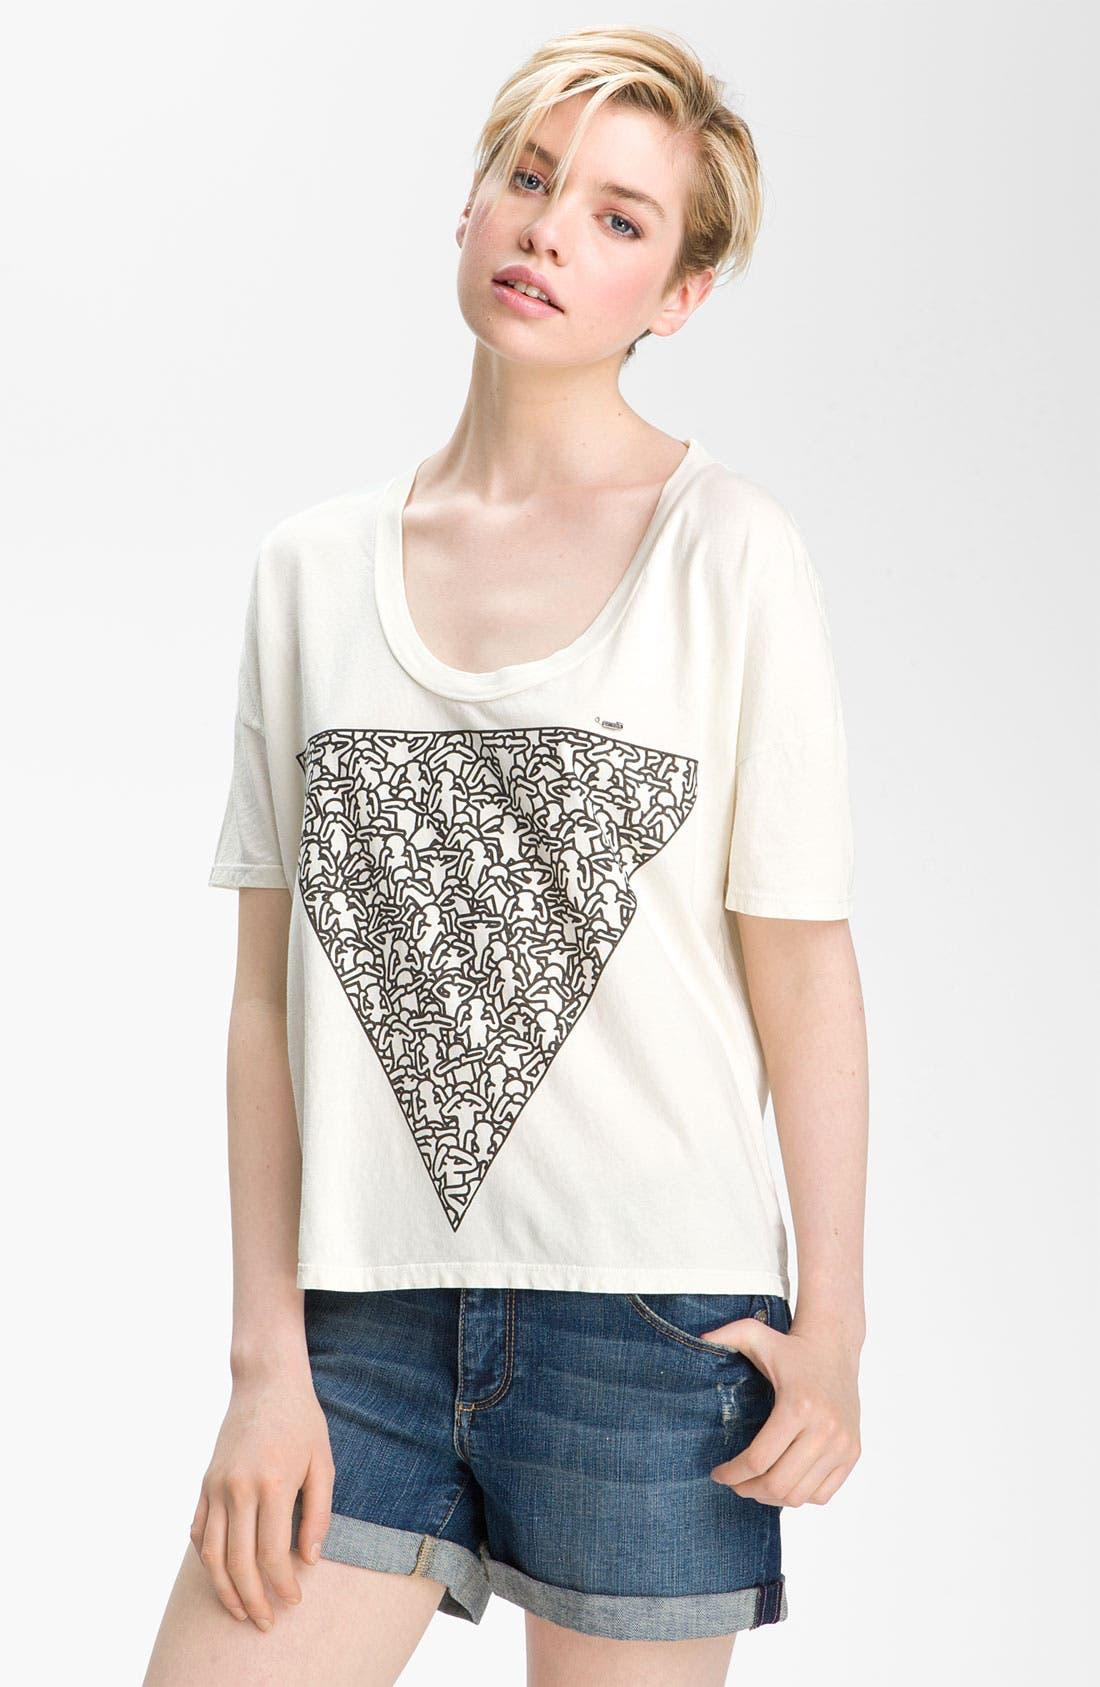 Alternate Image 1 Selected - Obey 'Triangle of Friends' Graphic Crop Top